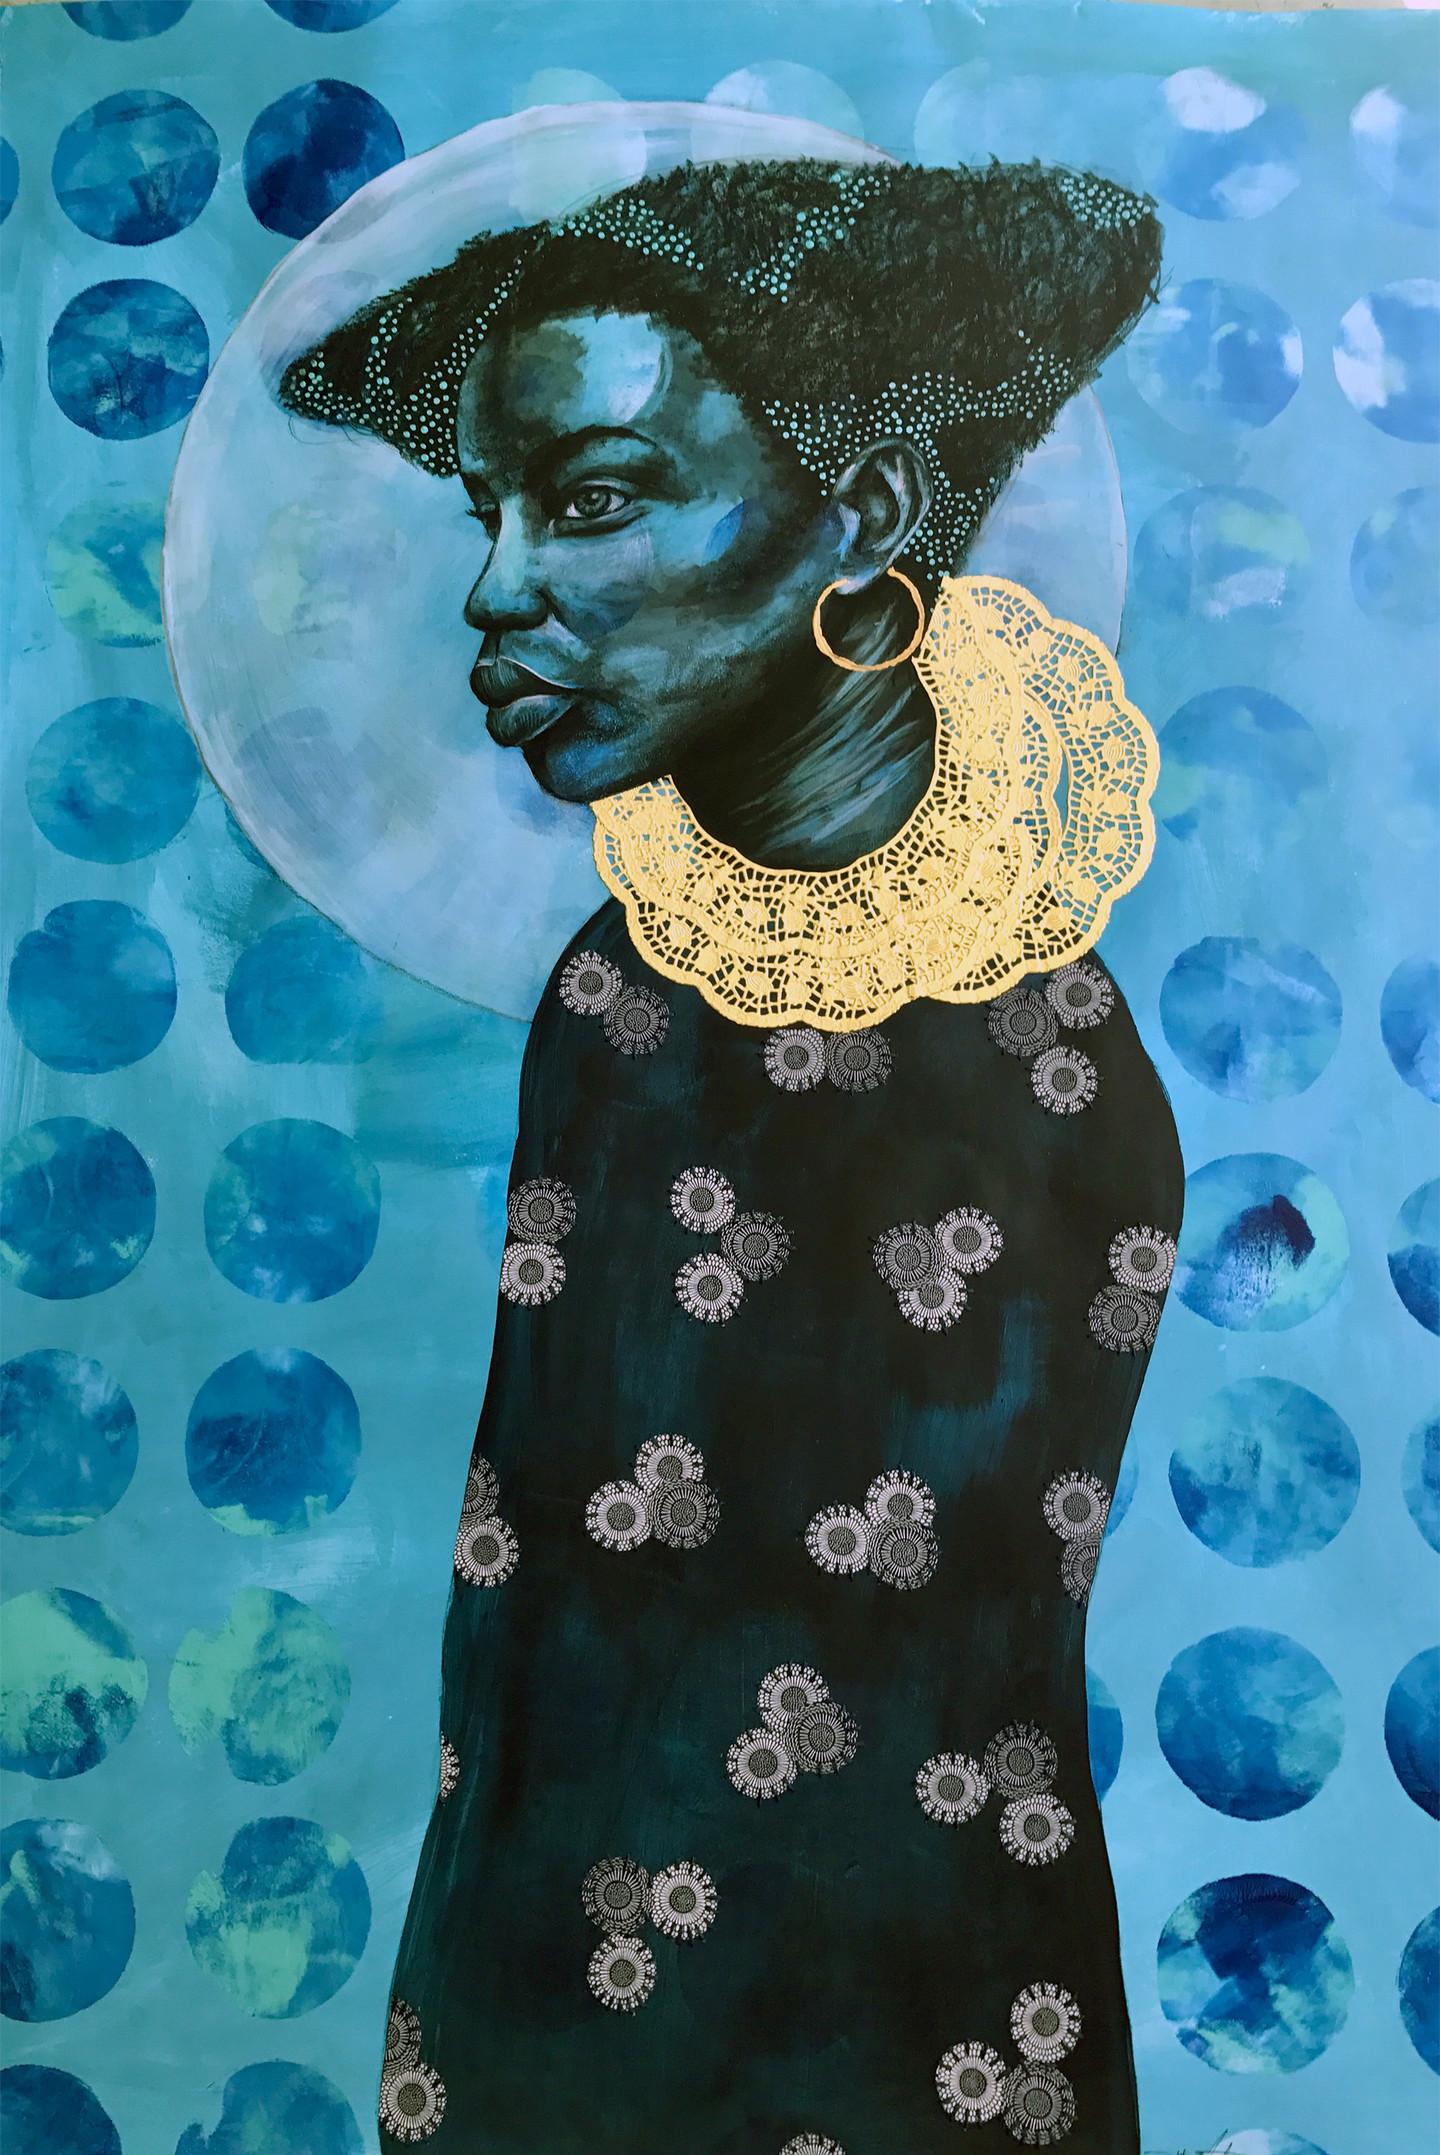 Portrait of a dark-skinned person in profile with bushy, short, dark hair; gold hoop earrings; and a delicate, gold, lace-like collar of ruffles. The portrait is painted on a blue background with circles fading in and out, and a white, moon-like halo around the person's head. They wear a long, dark top with a pattern of trios of white, small, patterned circles.